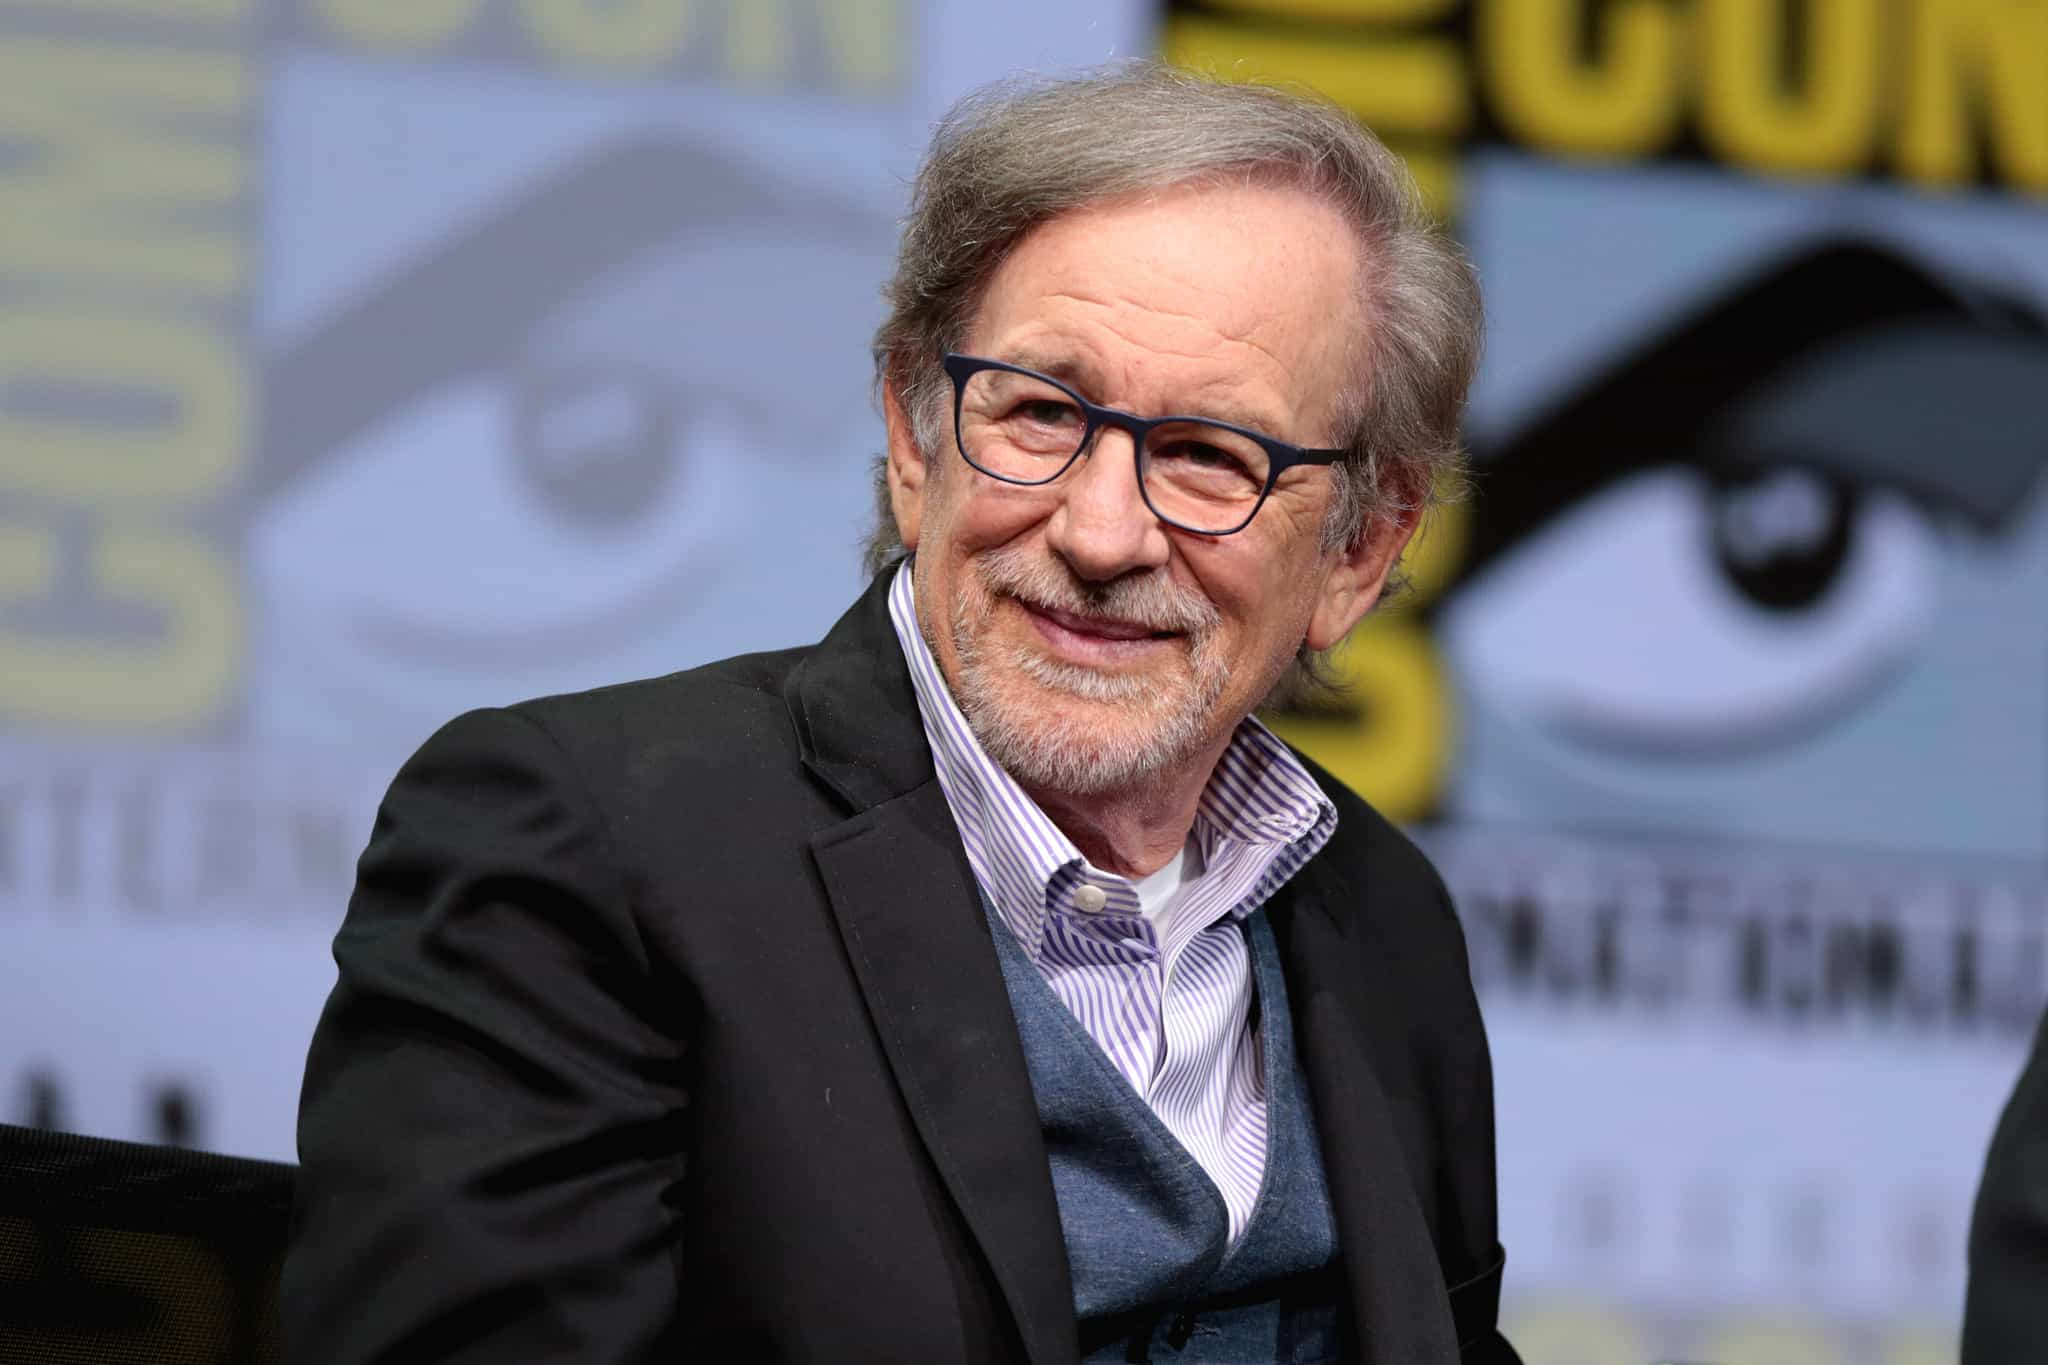 Steven Spielberg takes the stage at Comic-Con International in 2017.